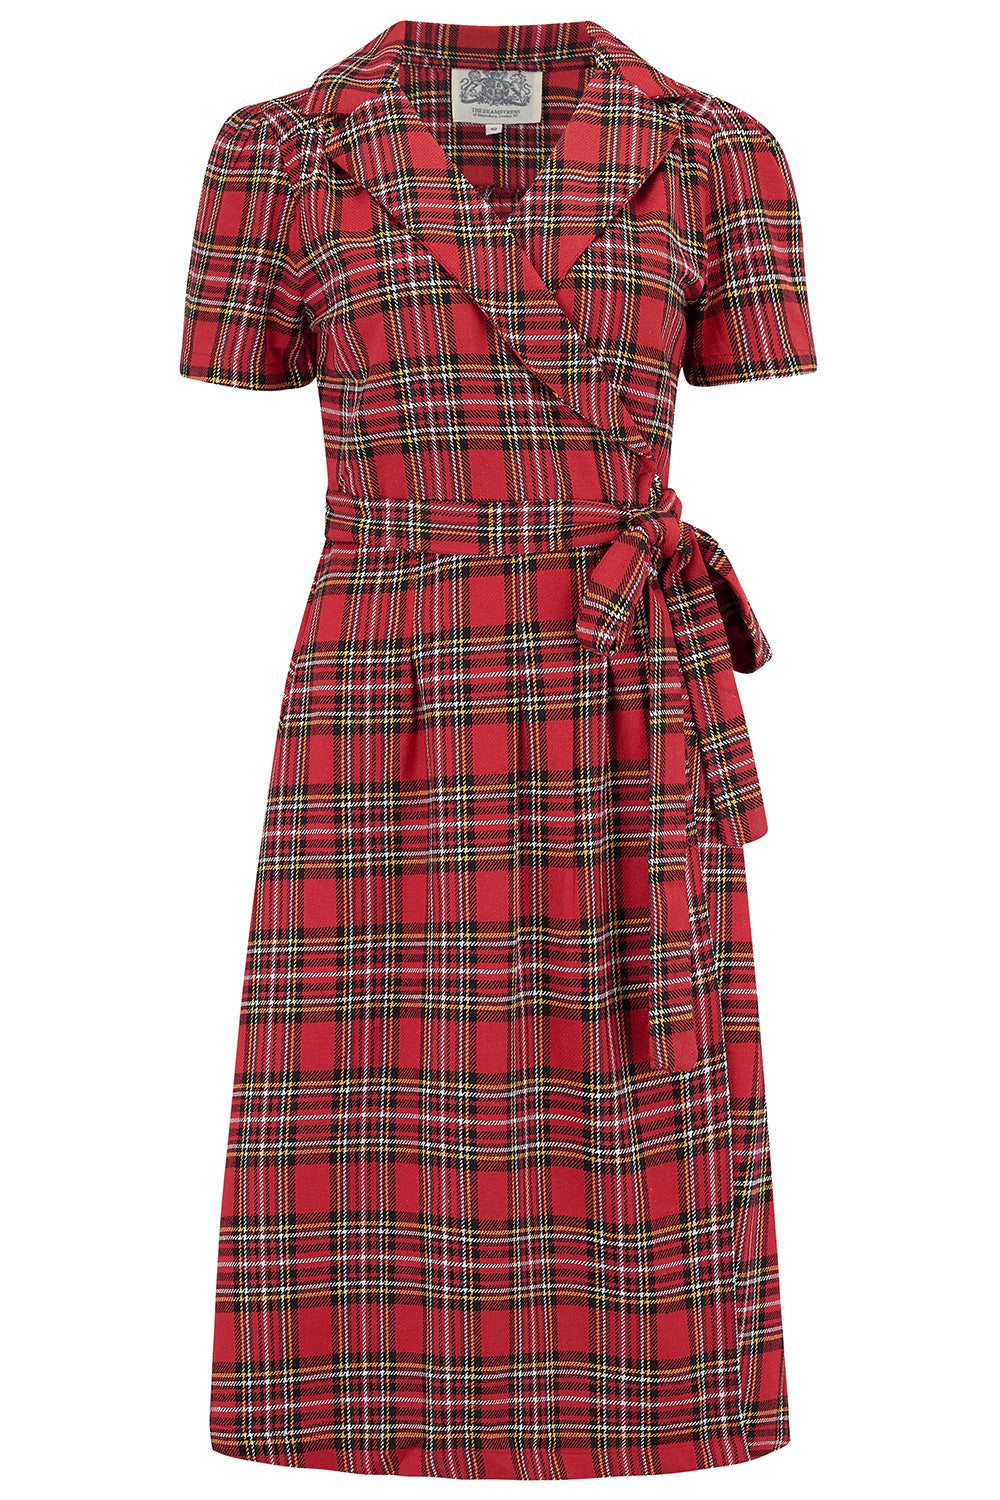 """Peggy"" Wrap Dress in Traditional Red Tartan , Authentic 1940s Vintage Style"